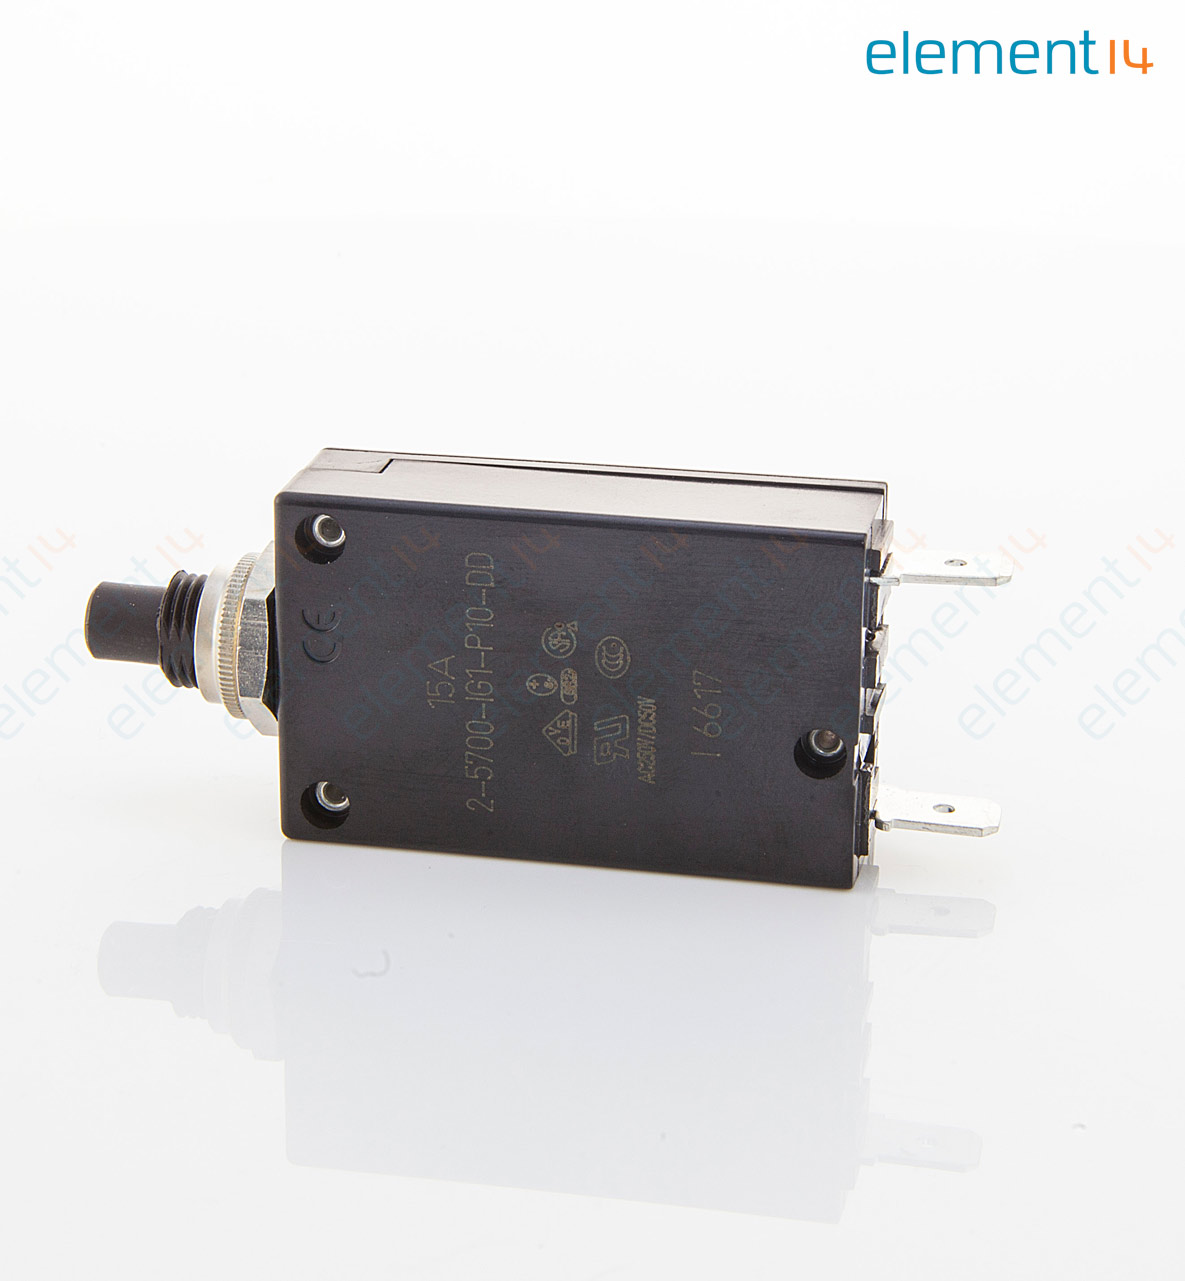 2 5700 Ig1 P10 Dd 000040 15a Eta Thermal Circuit Breaker Diagram Further Metal Push Button Switches China Mainland Series 15 A